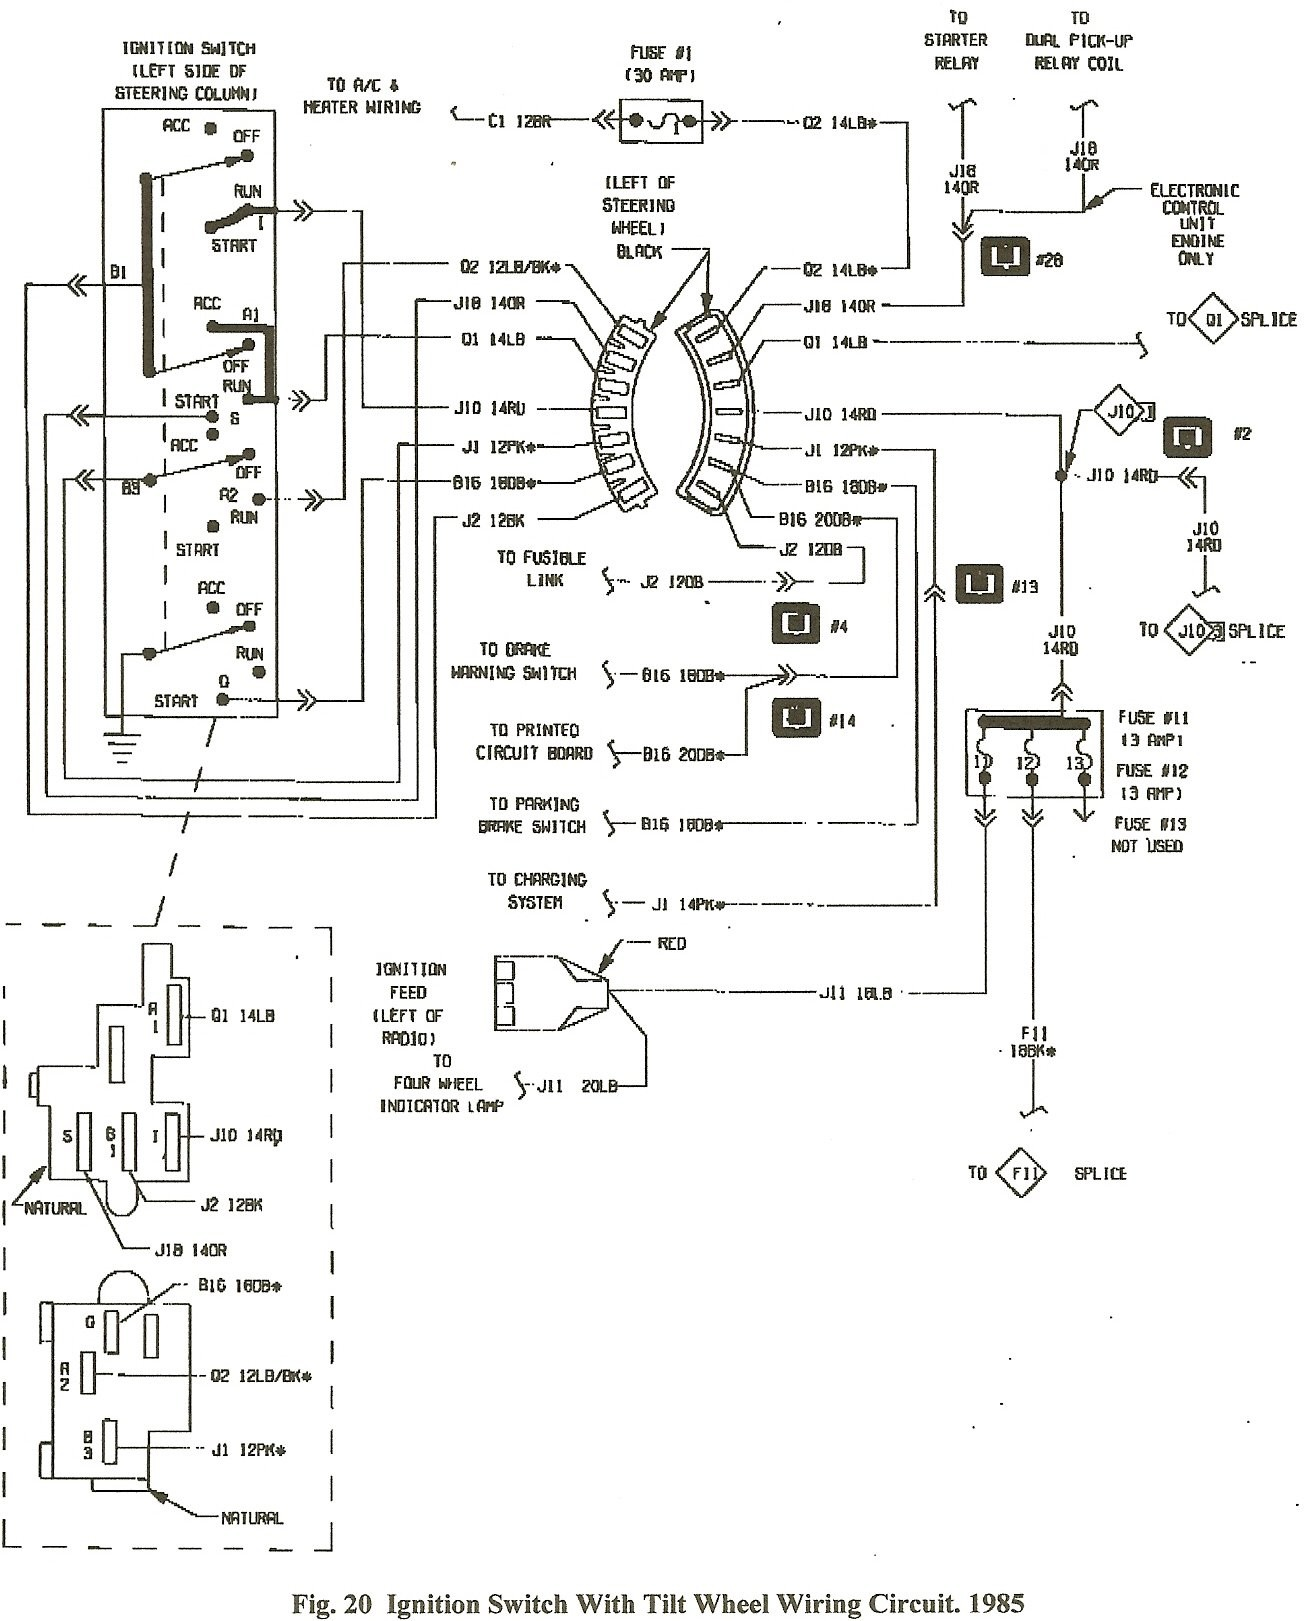 [TBQL_4184]  1951 Ford Headlight Switch Wiring Diagram Wiring Diagram 1987 Suzuki  Samurai - bengkenang.sardaracomunitaospitale.it | 2106 Ford Headlight Wiring Diagram |  | Wiring Diagram and Schematics